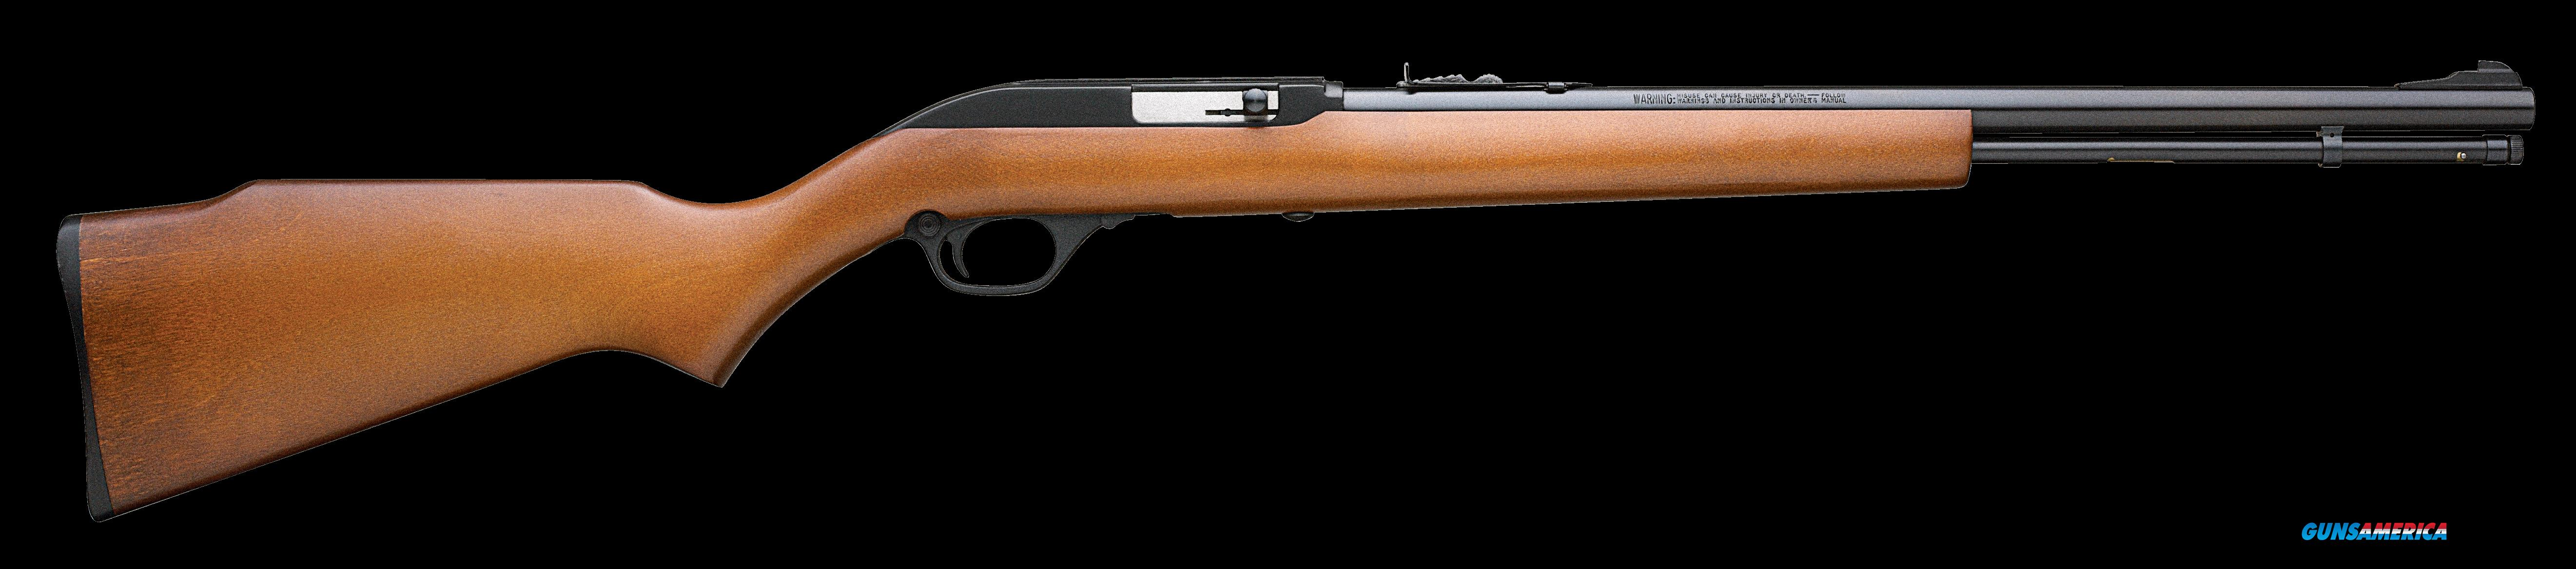 "Marlin 70620 60 Semi-Automatic 22 Long Rifle 19"" 14+1 Laminate Walnut Stk Blued  Guns > Rifles > MN Misc Rifles"